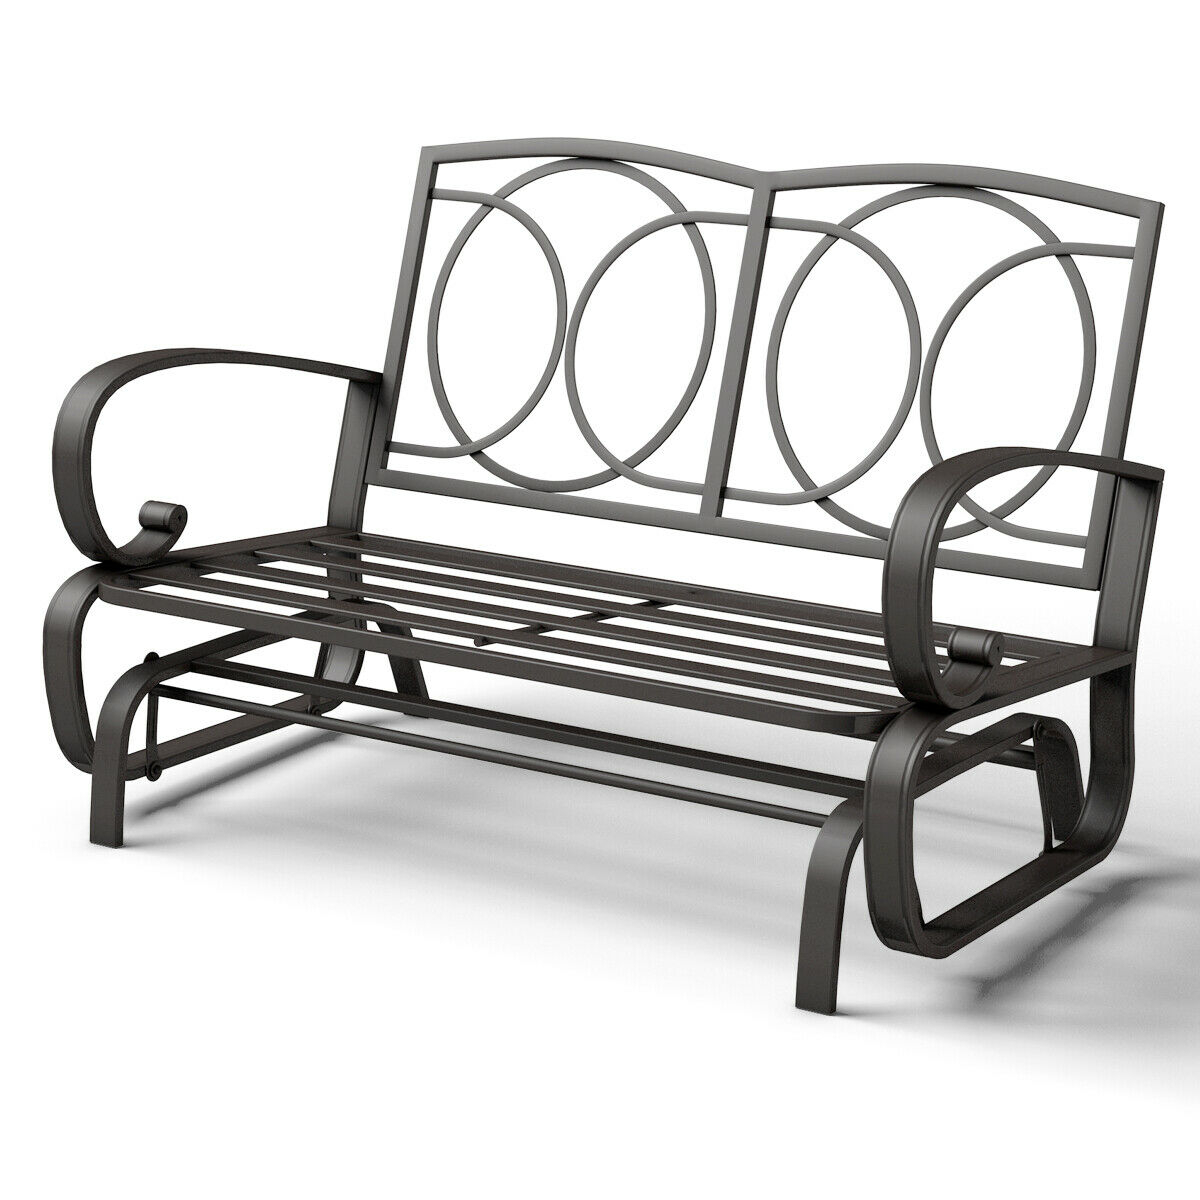 Costway Glider Outdoor Patio Rocking Bench Loveseat Pertaining To Rocking Glider Benches (View 5 of 25)